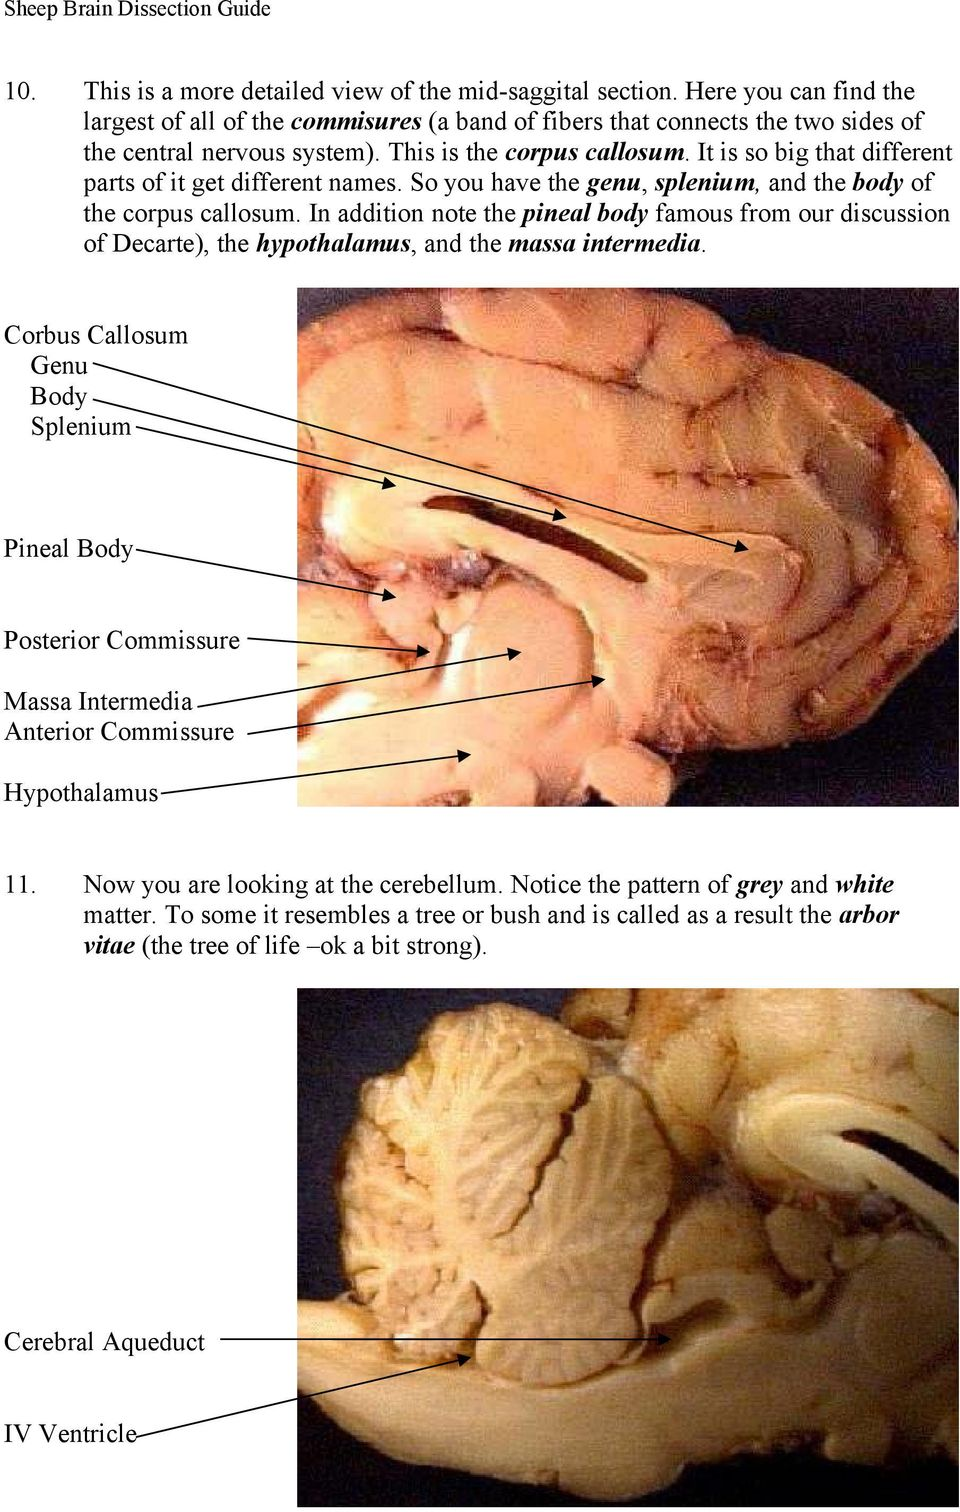 In addition note the pineal body famous from our discussion of Decarte), the hypothalamus, and the massa intermedia.